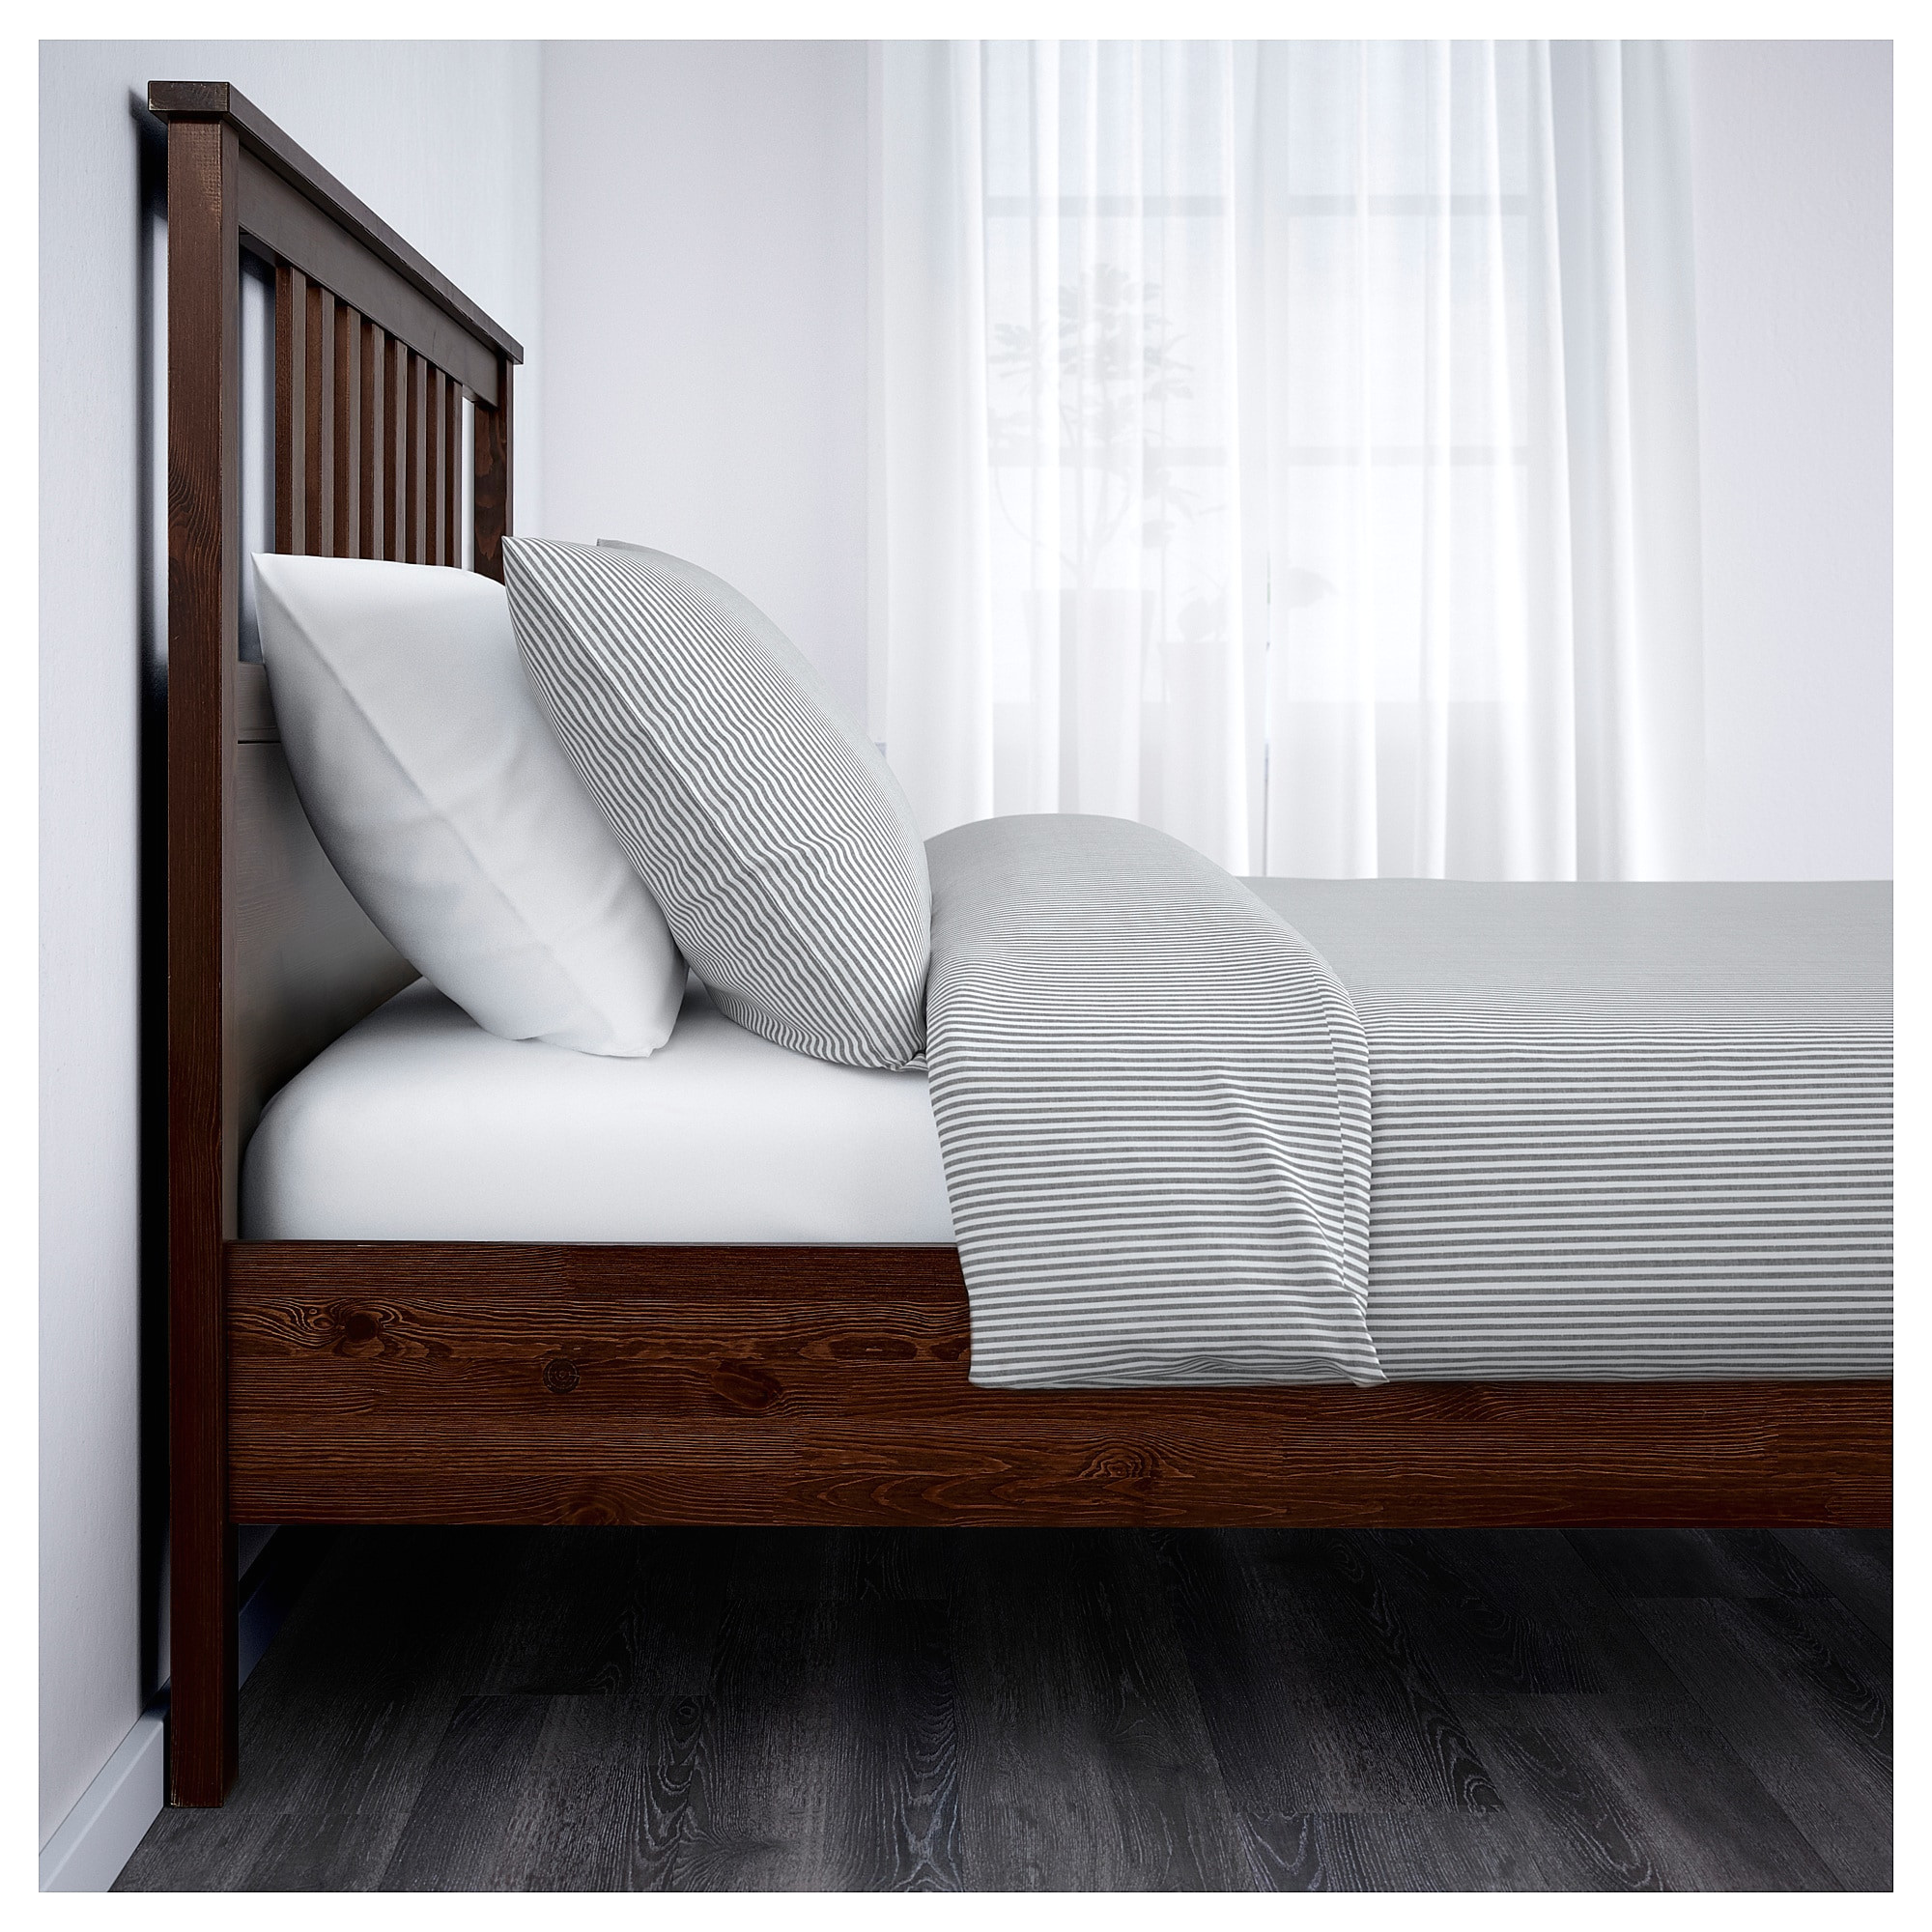 Sultan Lödingen Ikea Slatted Bed Base Review Lonset Adinaporter